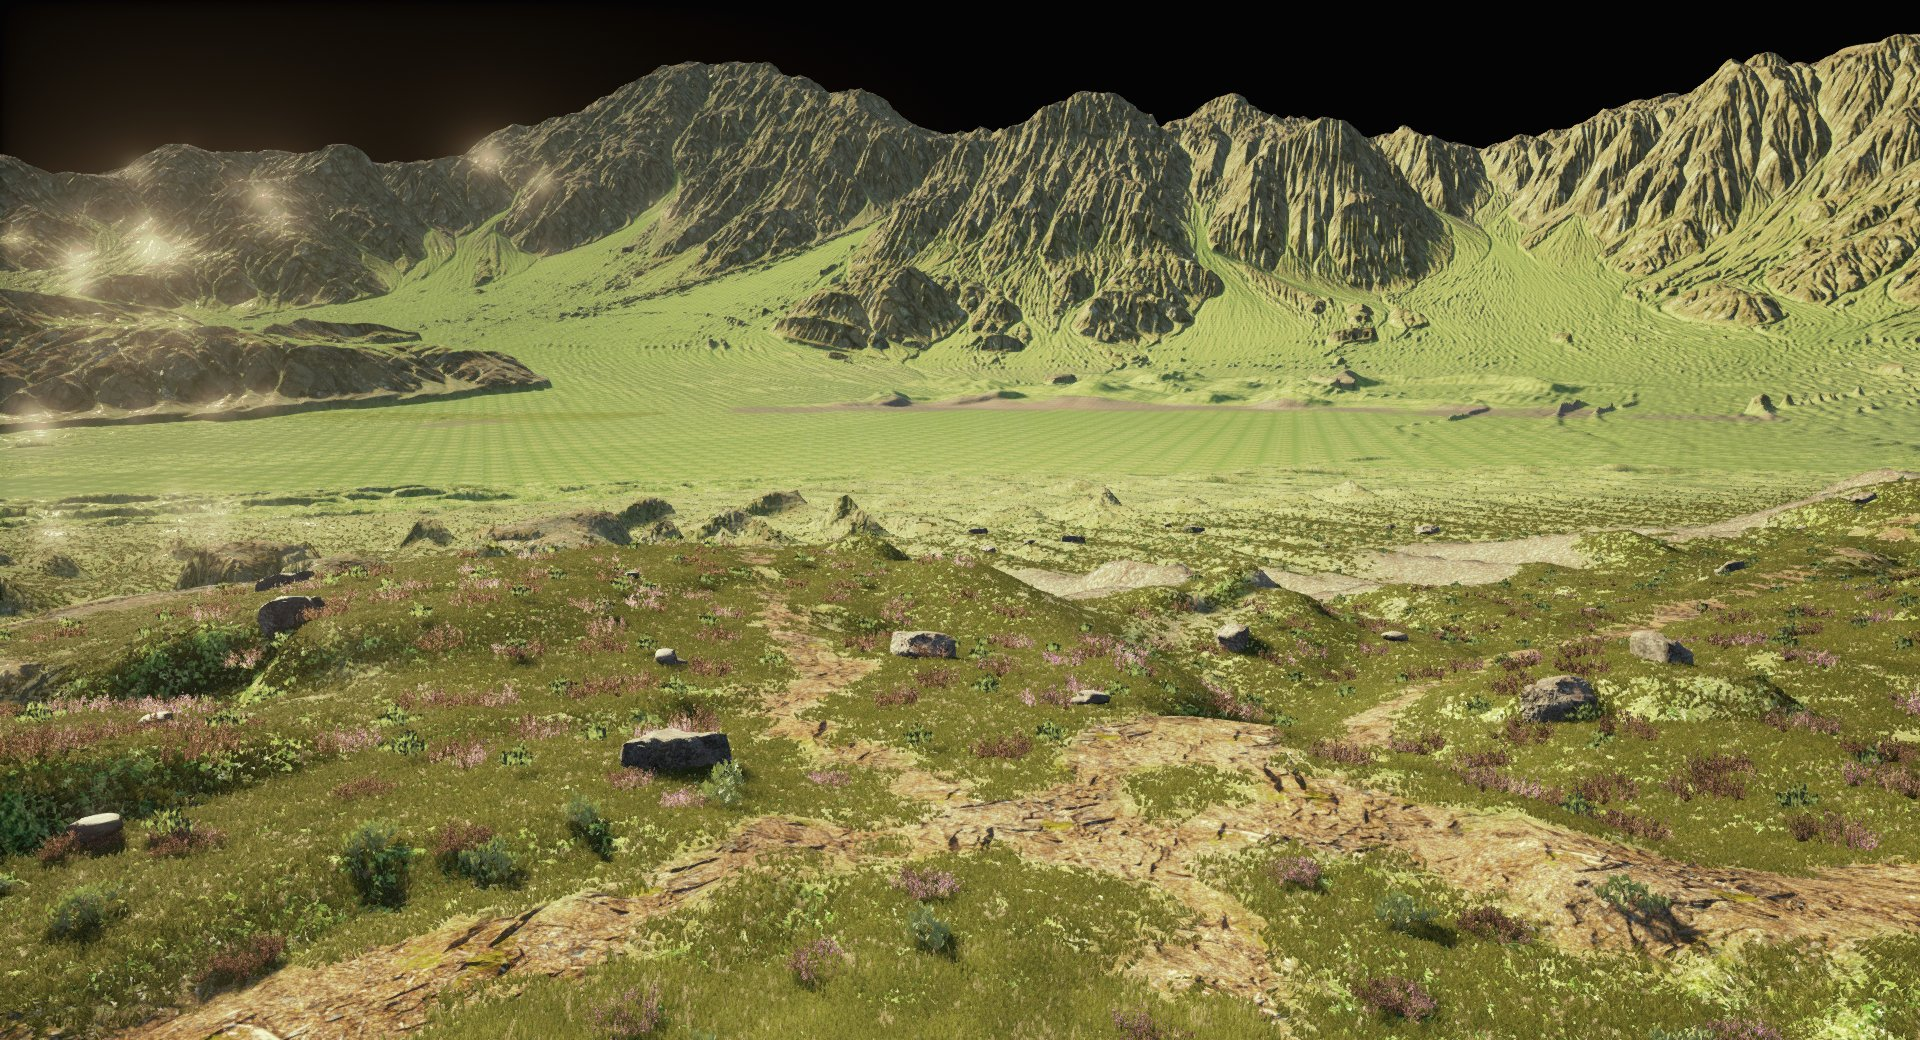 ArtStation - Landscape Study created with World Machine and UE4